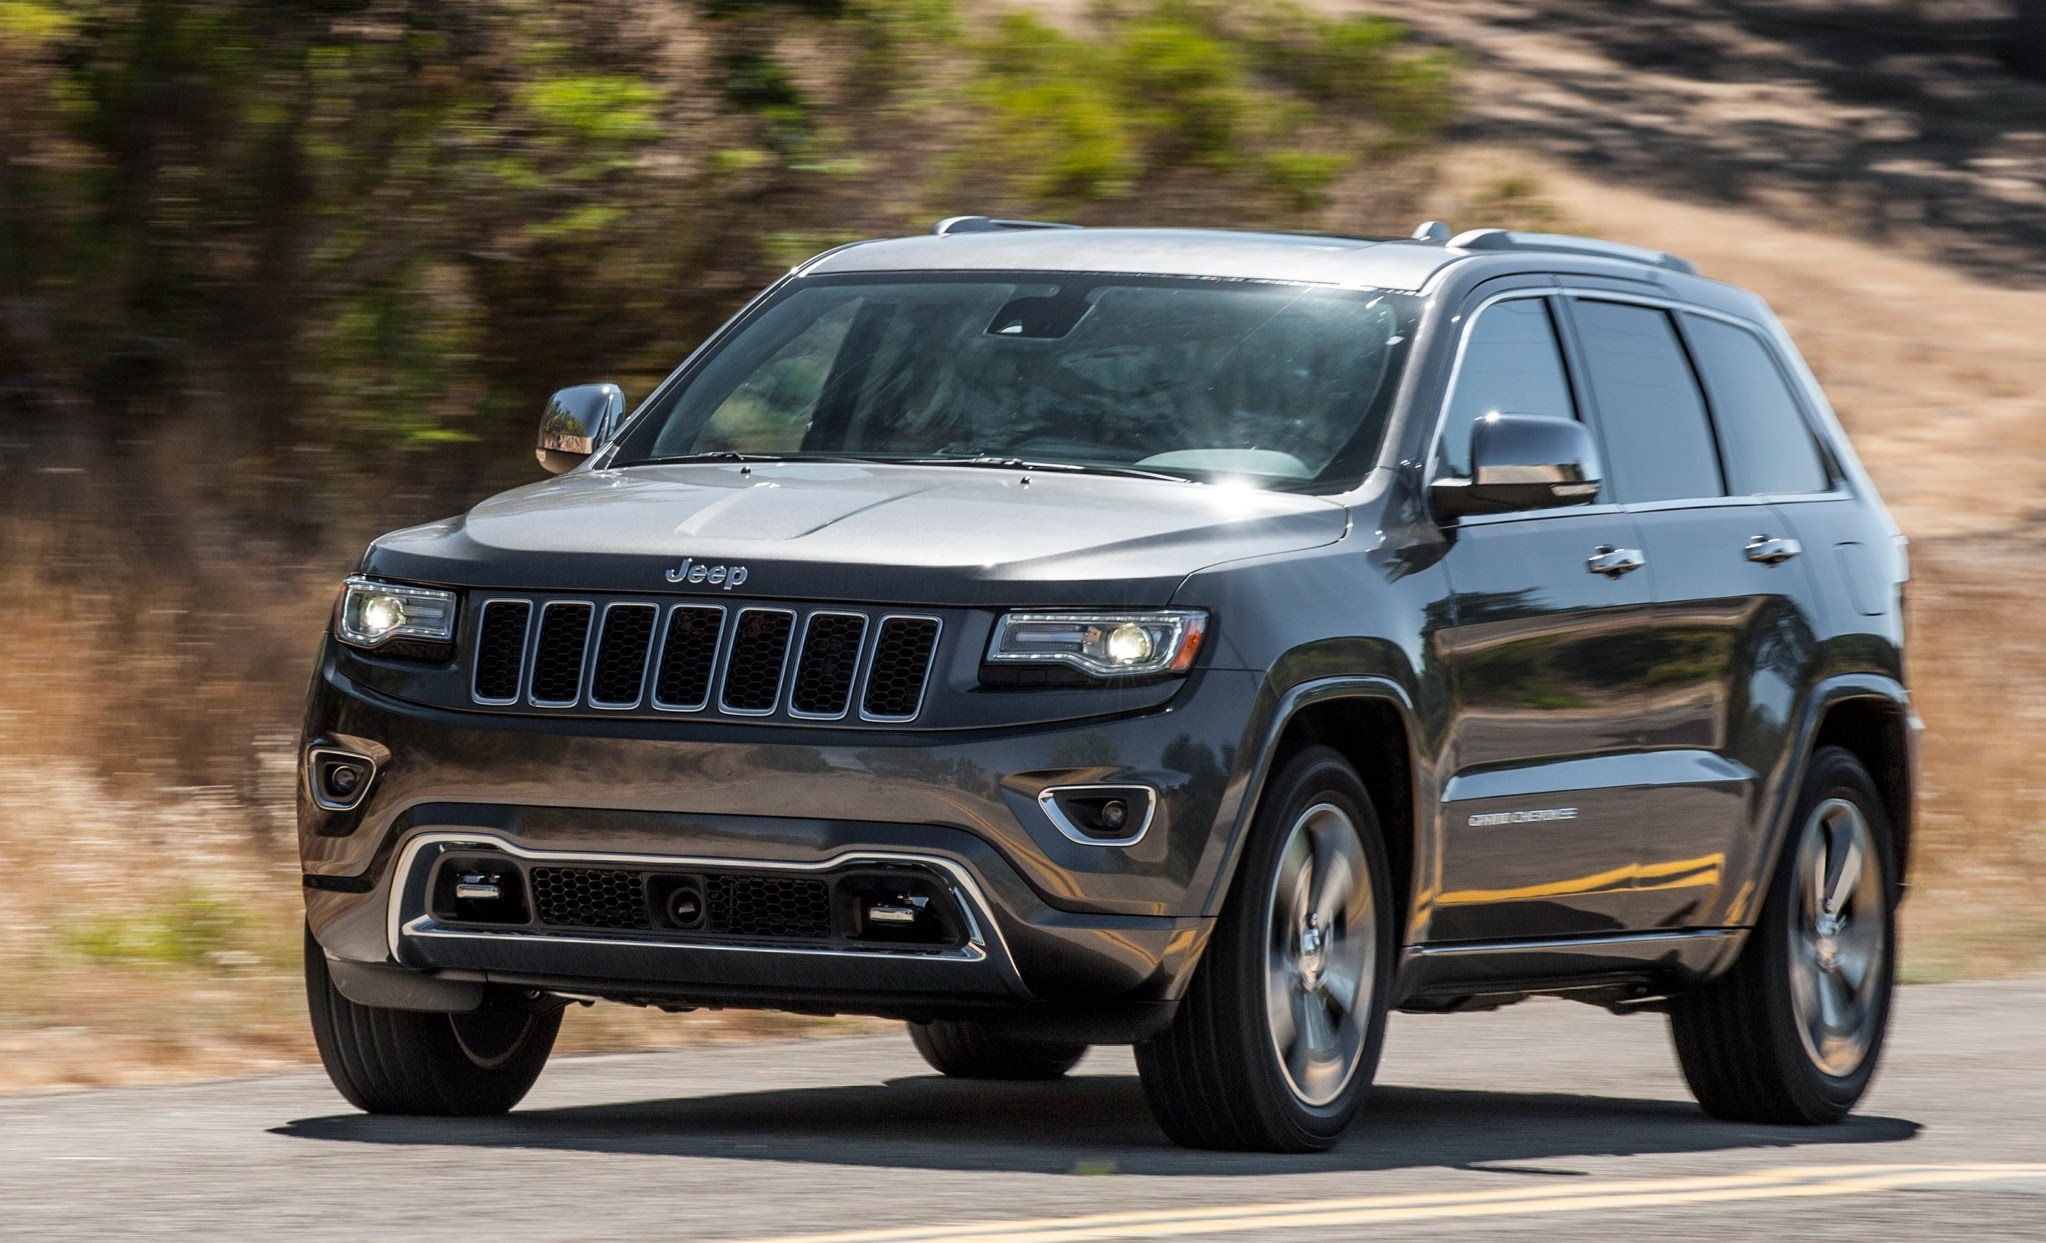 2016 jeep grand cherokee ecodiesel transmission repair cost guide. Black Bedroom Furniture Sets. Home Design Ideas